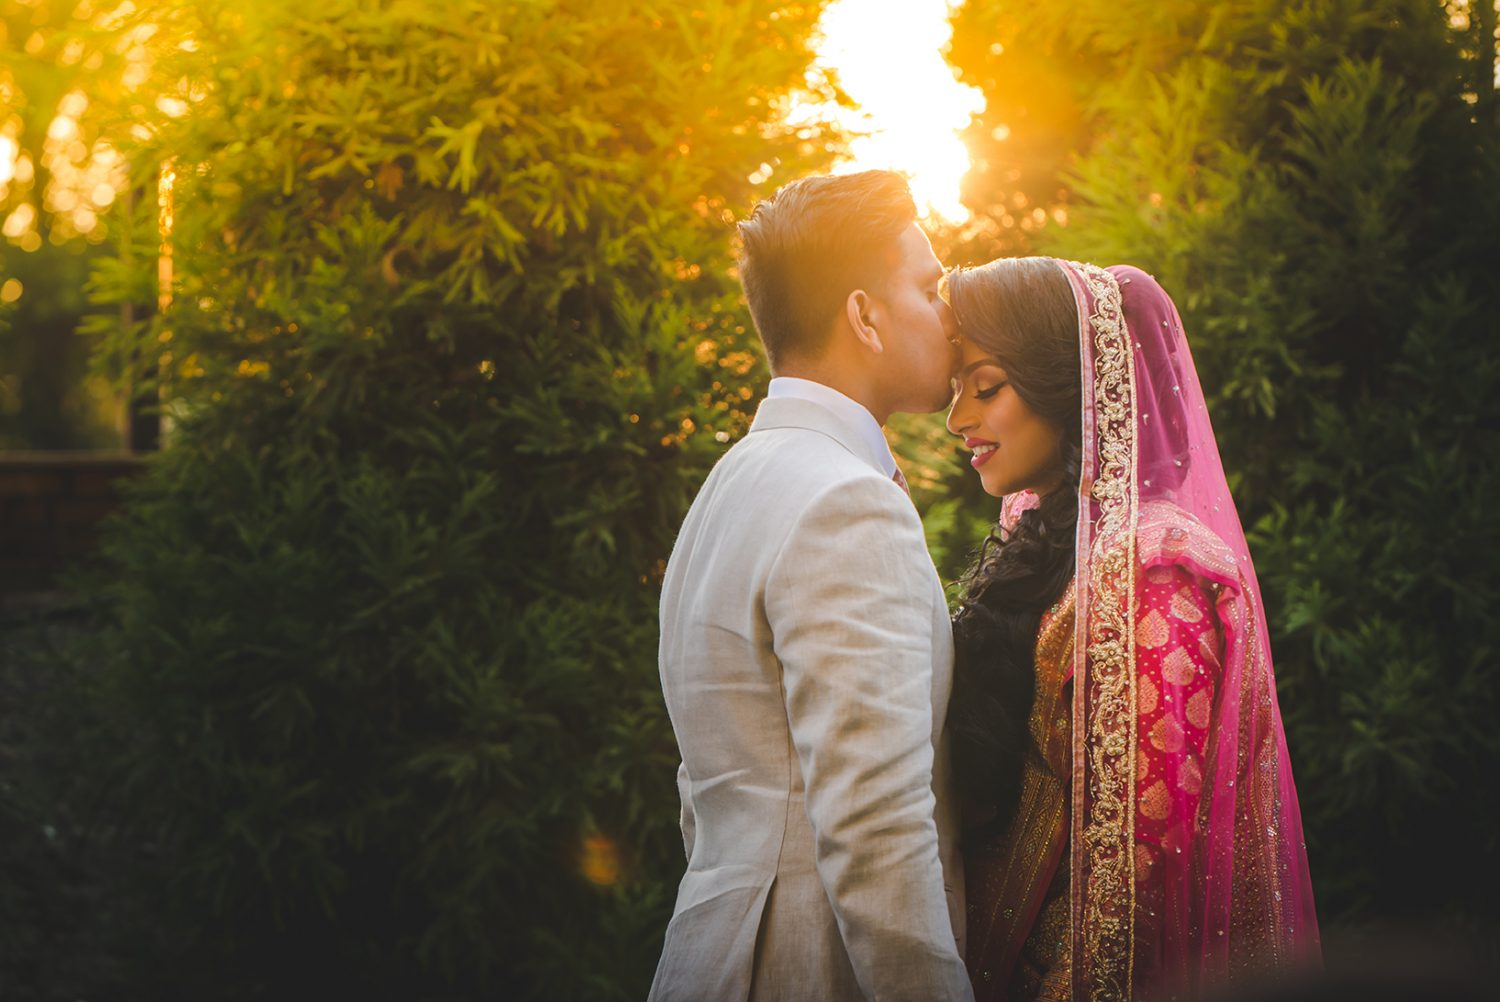 south_asian_wedding_photography_dhoom_studio_new_york76-e1573099693997 SOUTH ASIAN WEDDINGS